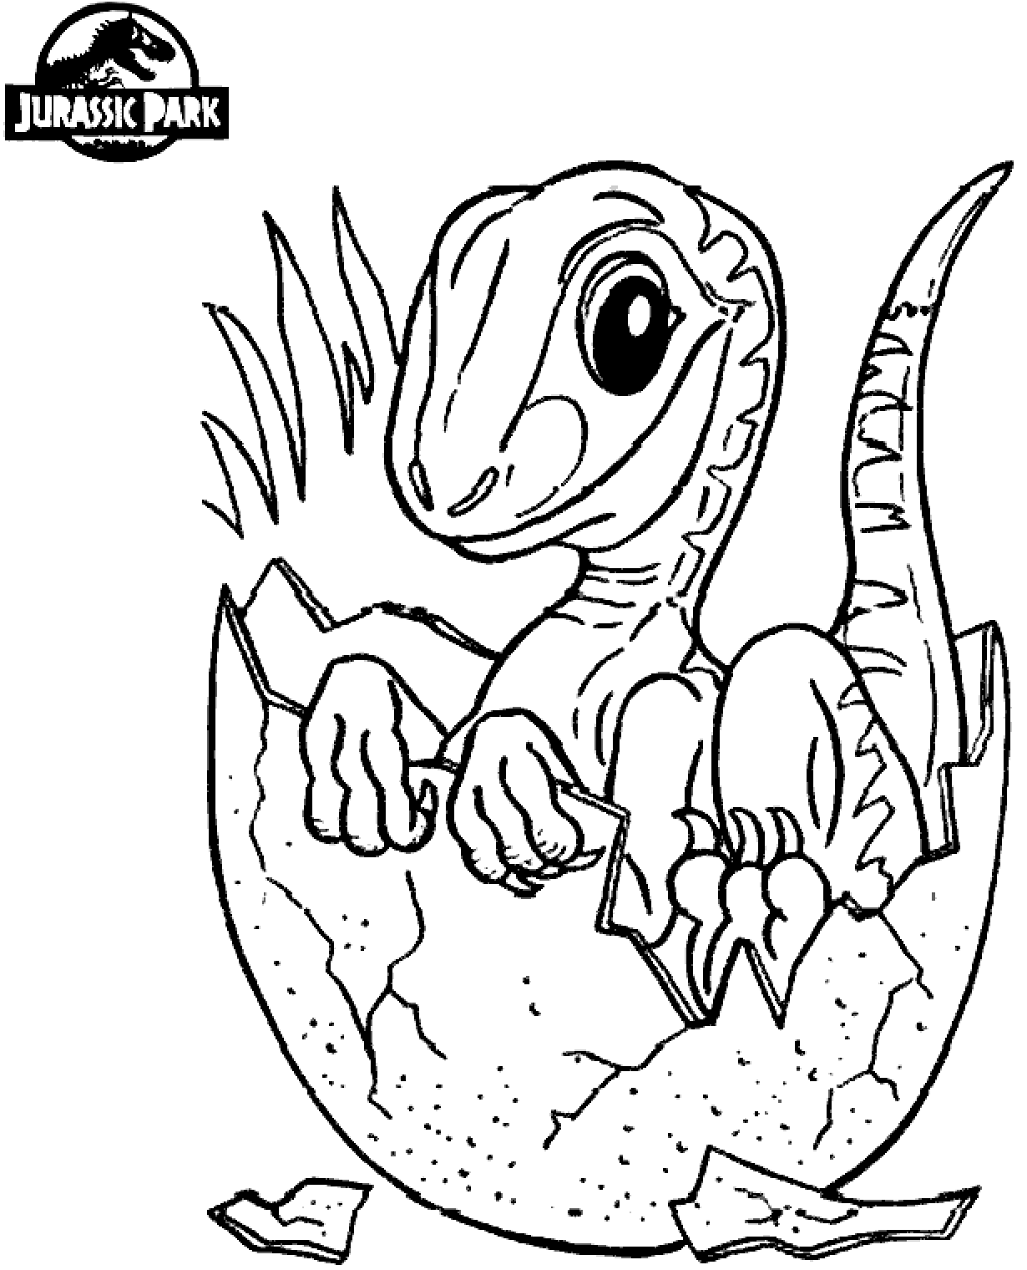 jurassic park dinosaur coloring pages free coloring pages printable pictures to color kids dinosaur coloring jurassic park pages